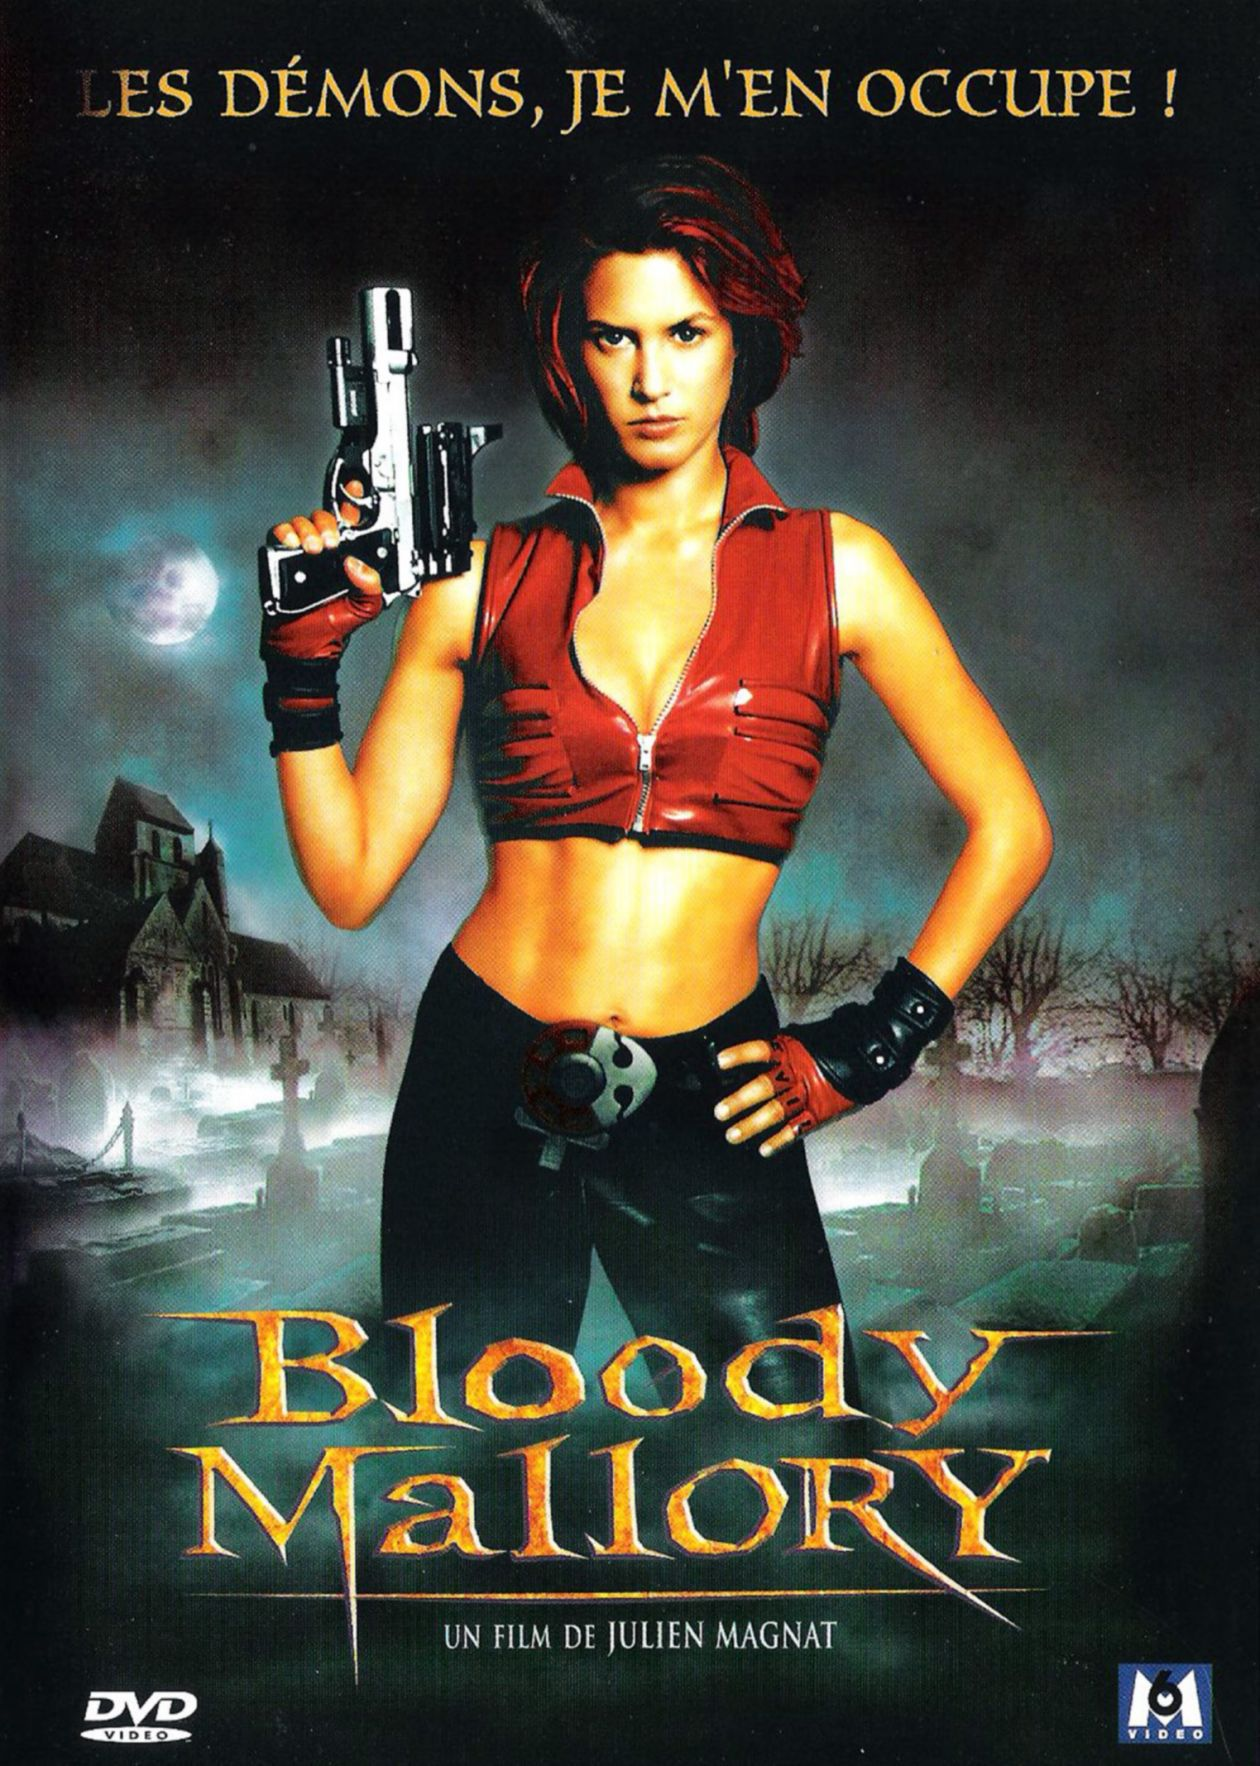 Olivia Bonamy French actress actrice comédienne | Bloody Mallory / Julien Magnat 2002 Movie Poster Affiche film DVD Cover